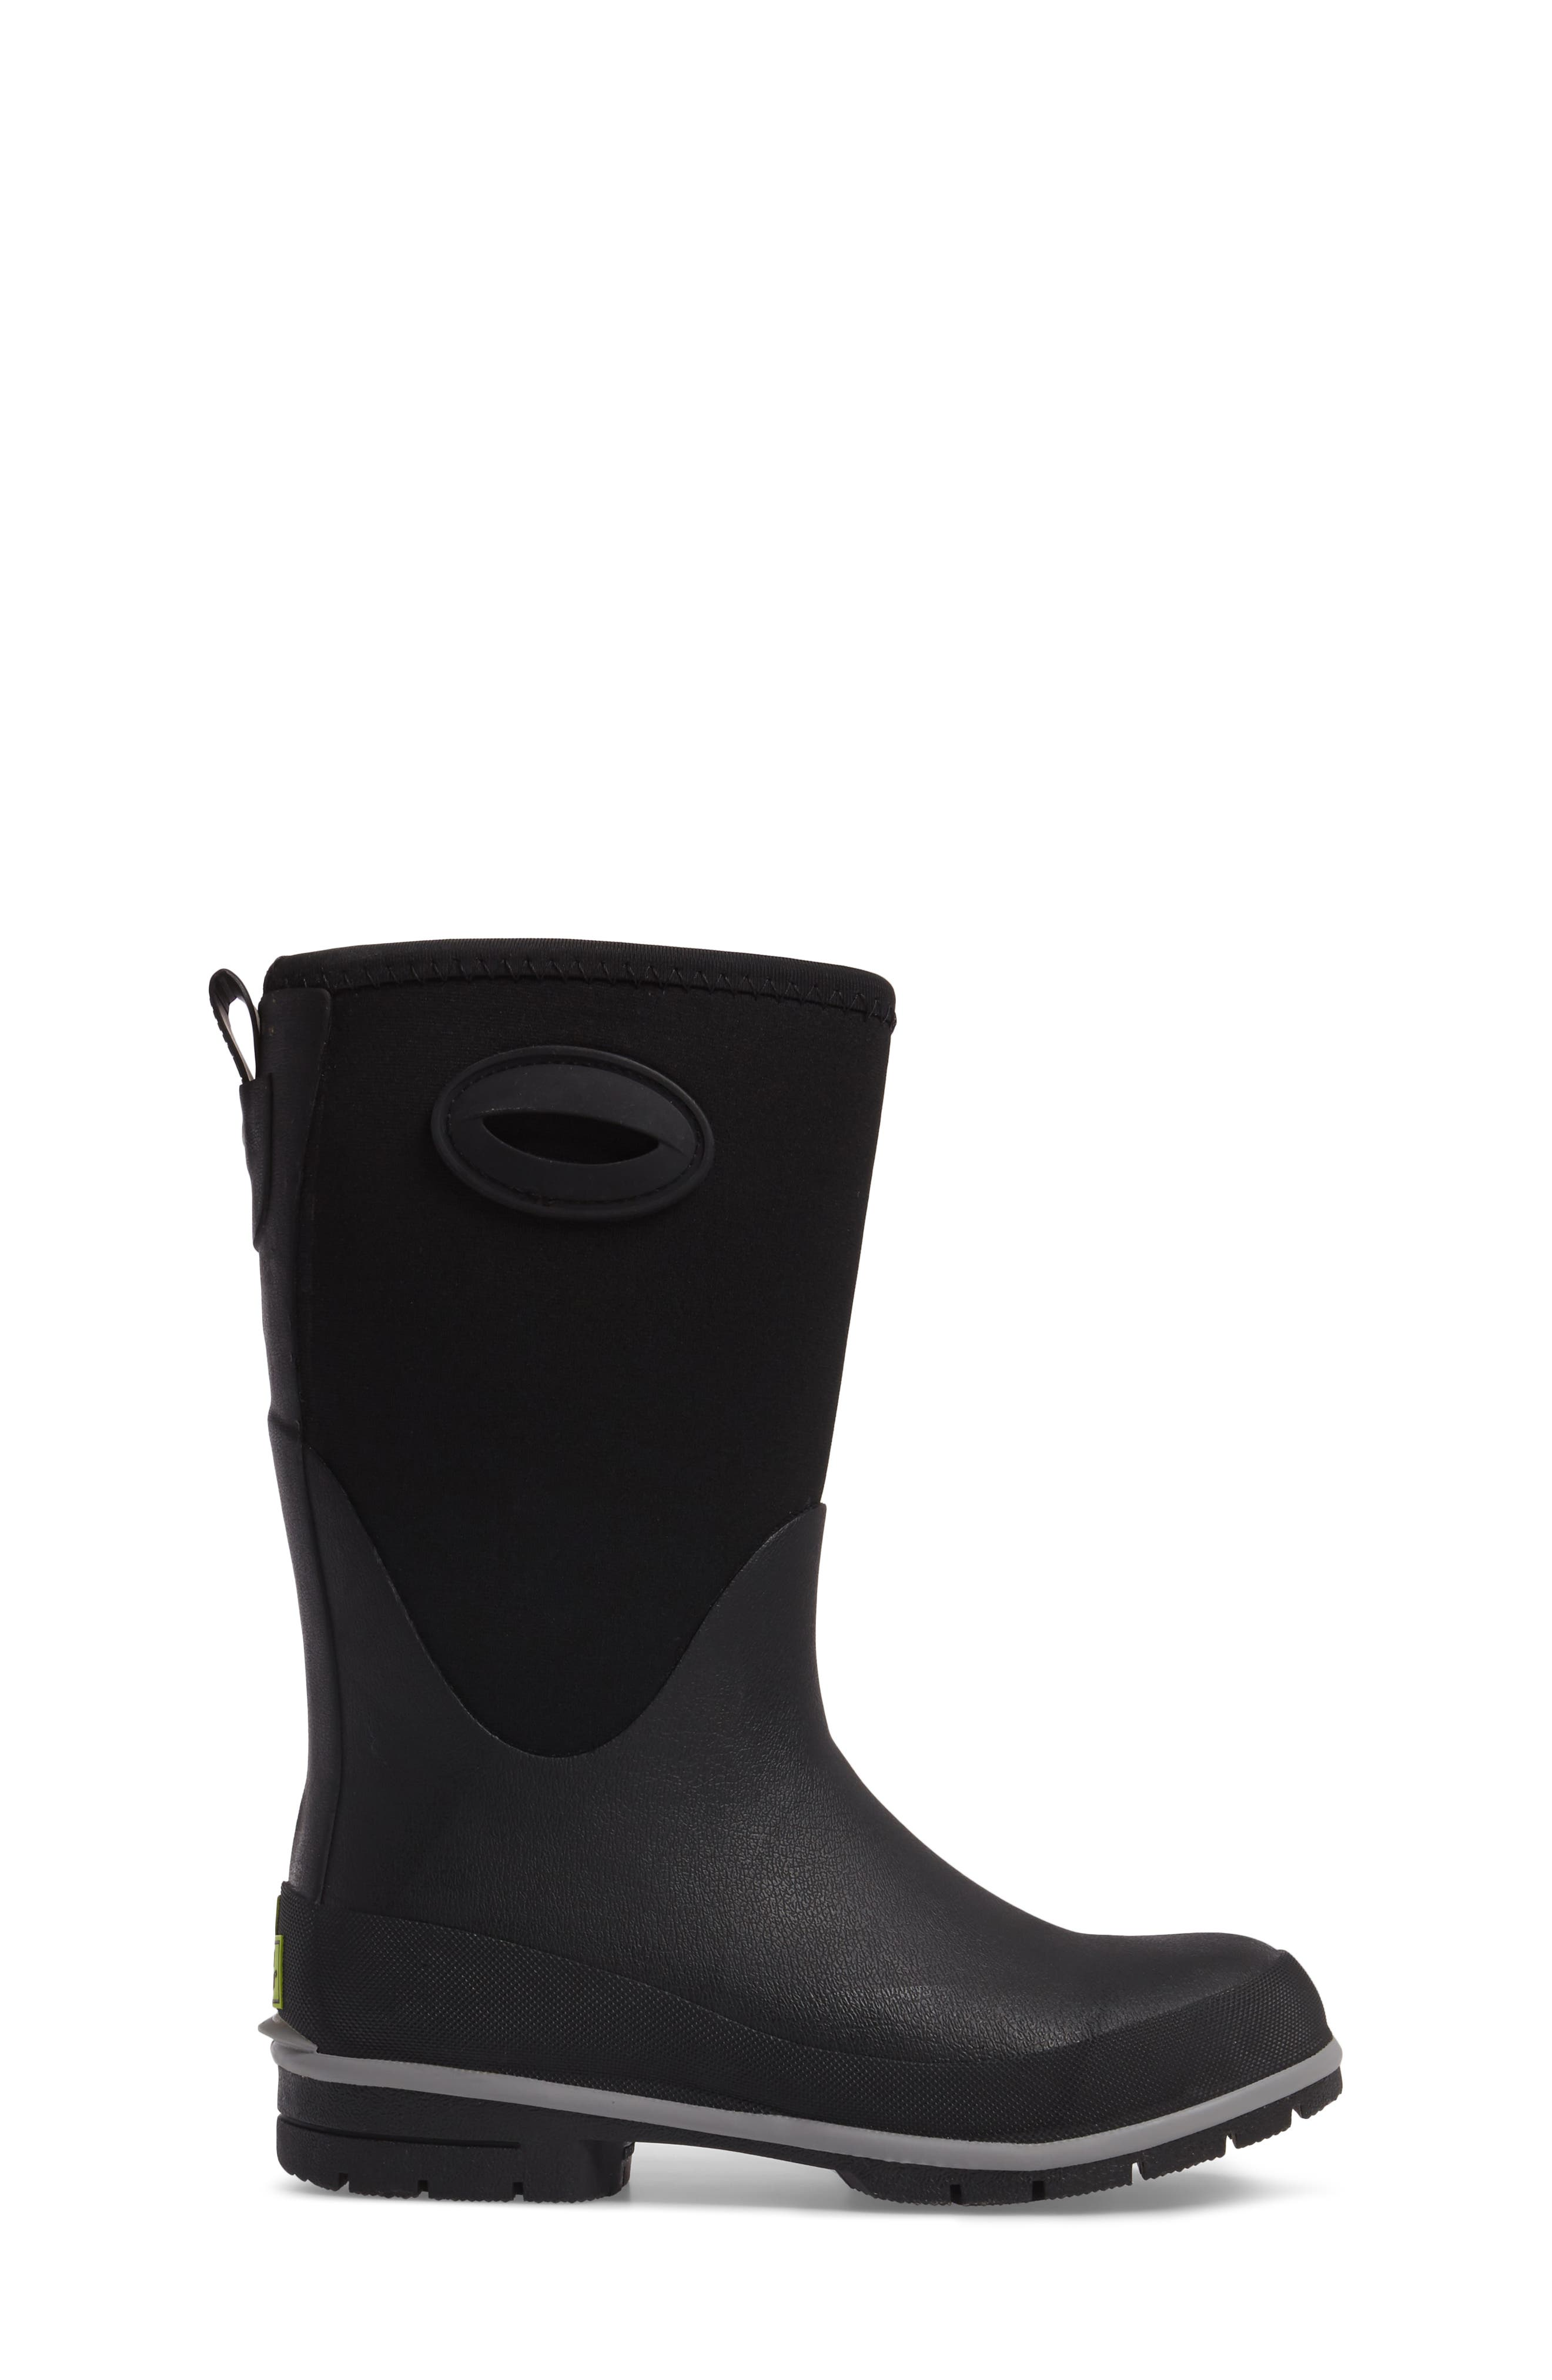 Neoprene Insulated Boot,                             Alternate thumbnail 3, color,                             001